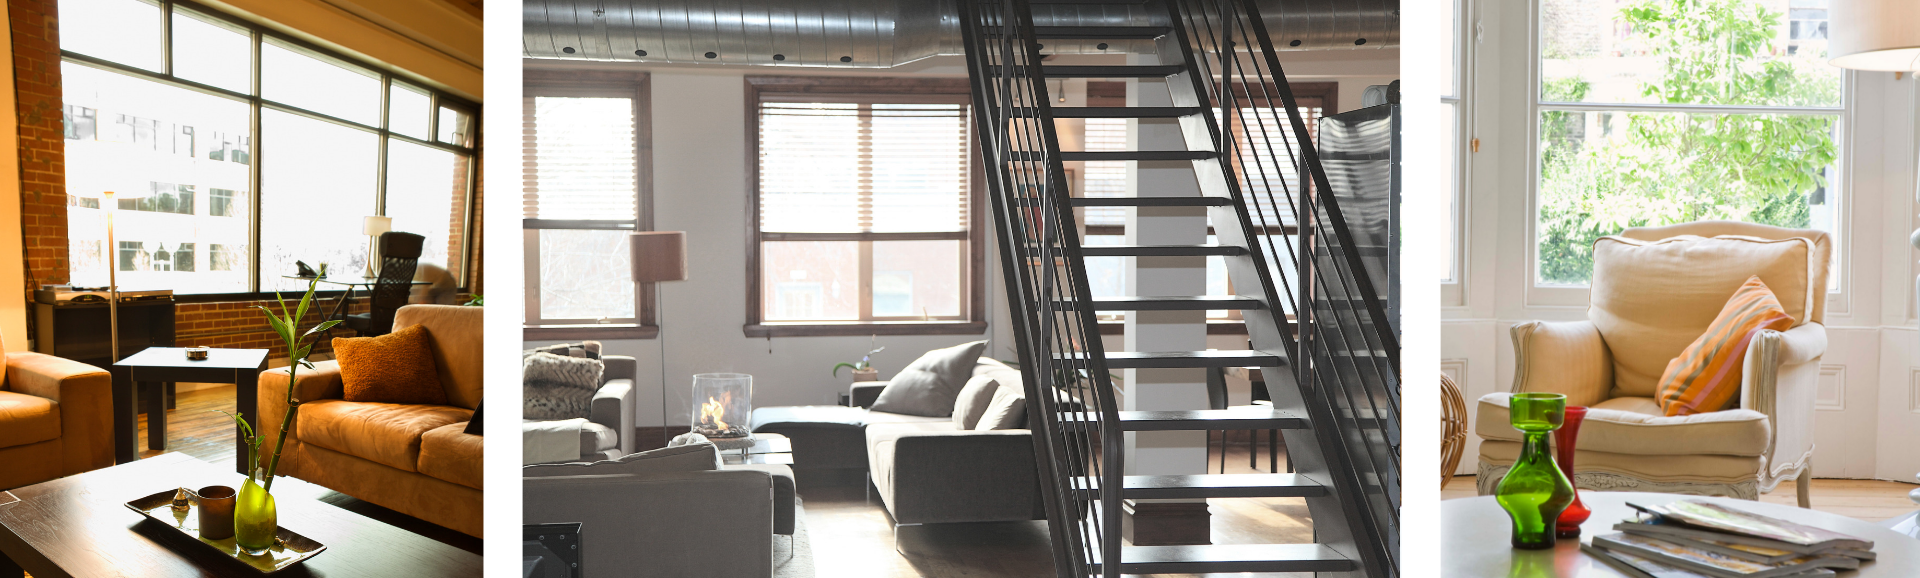 How to Make Your Apartment's First Impression Absolutely Rock